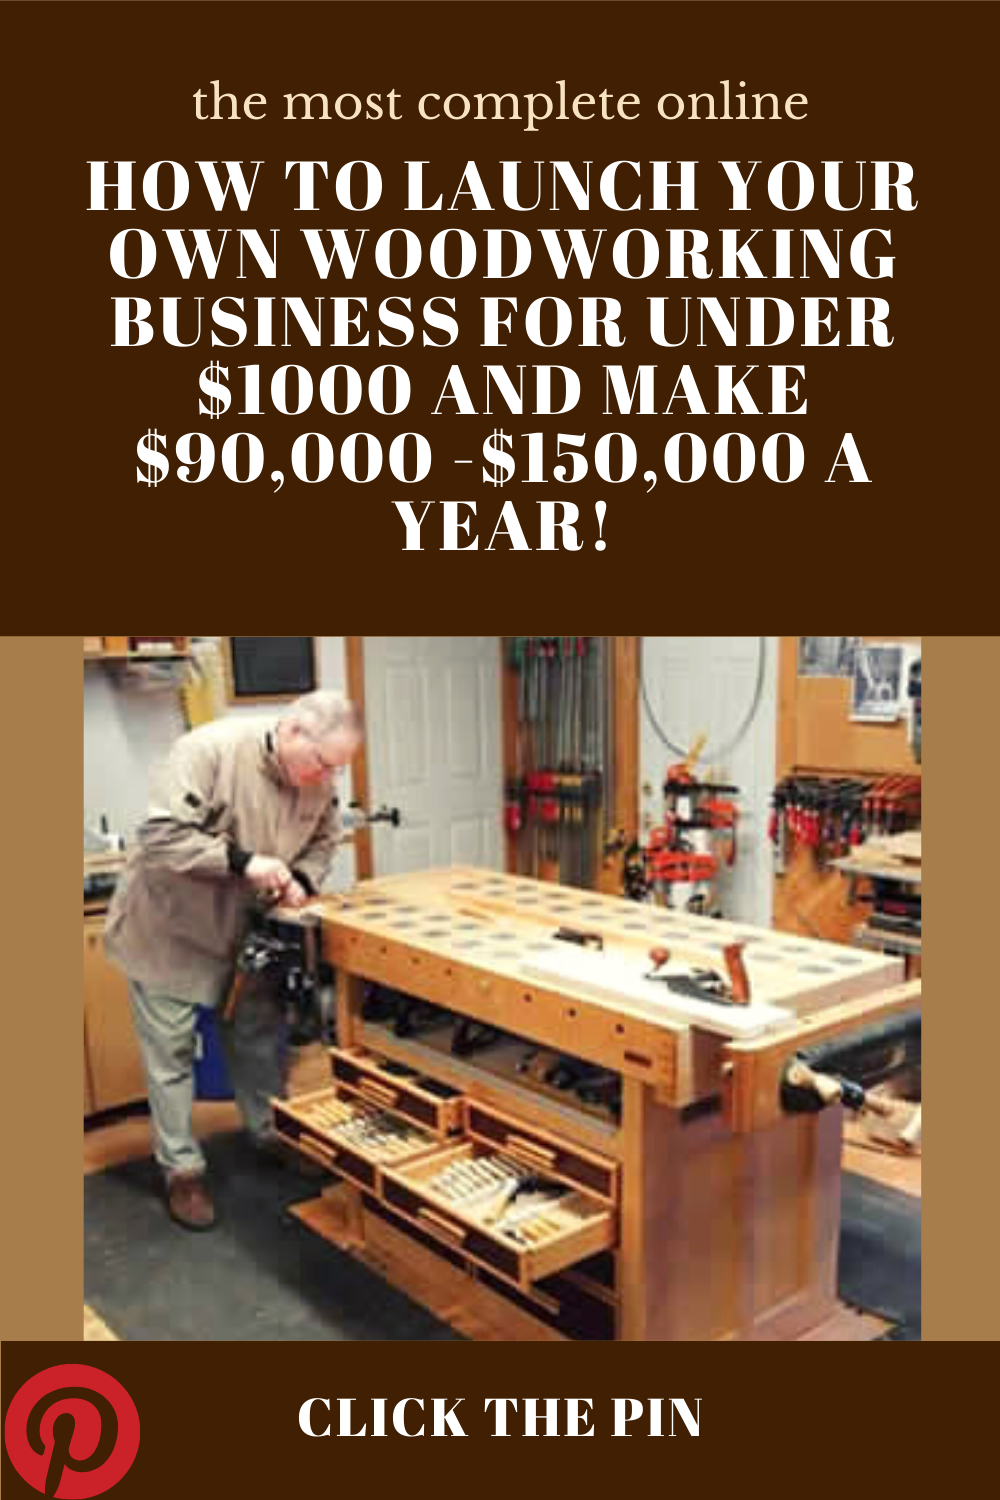 Starting A Woodworking Business Will Be One Of The Best Decisions You Ll Ever In 2020 Work From Home Companies Woodworking Business Ideas Work From Home Opportunities